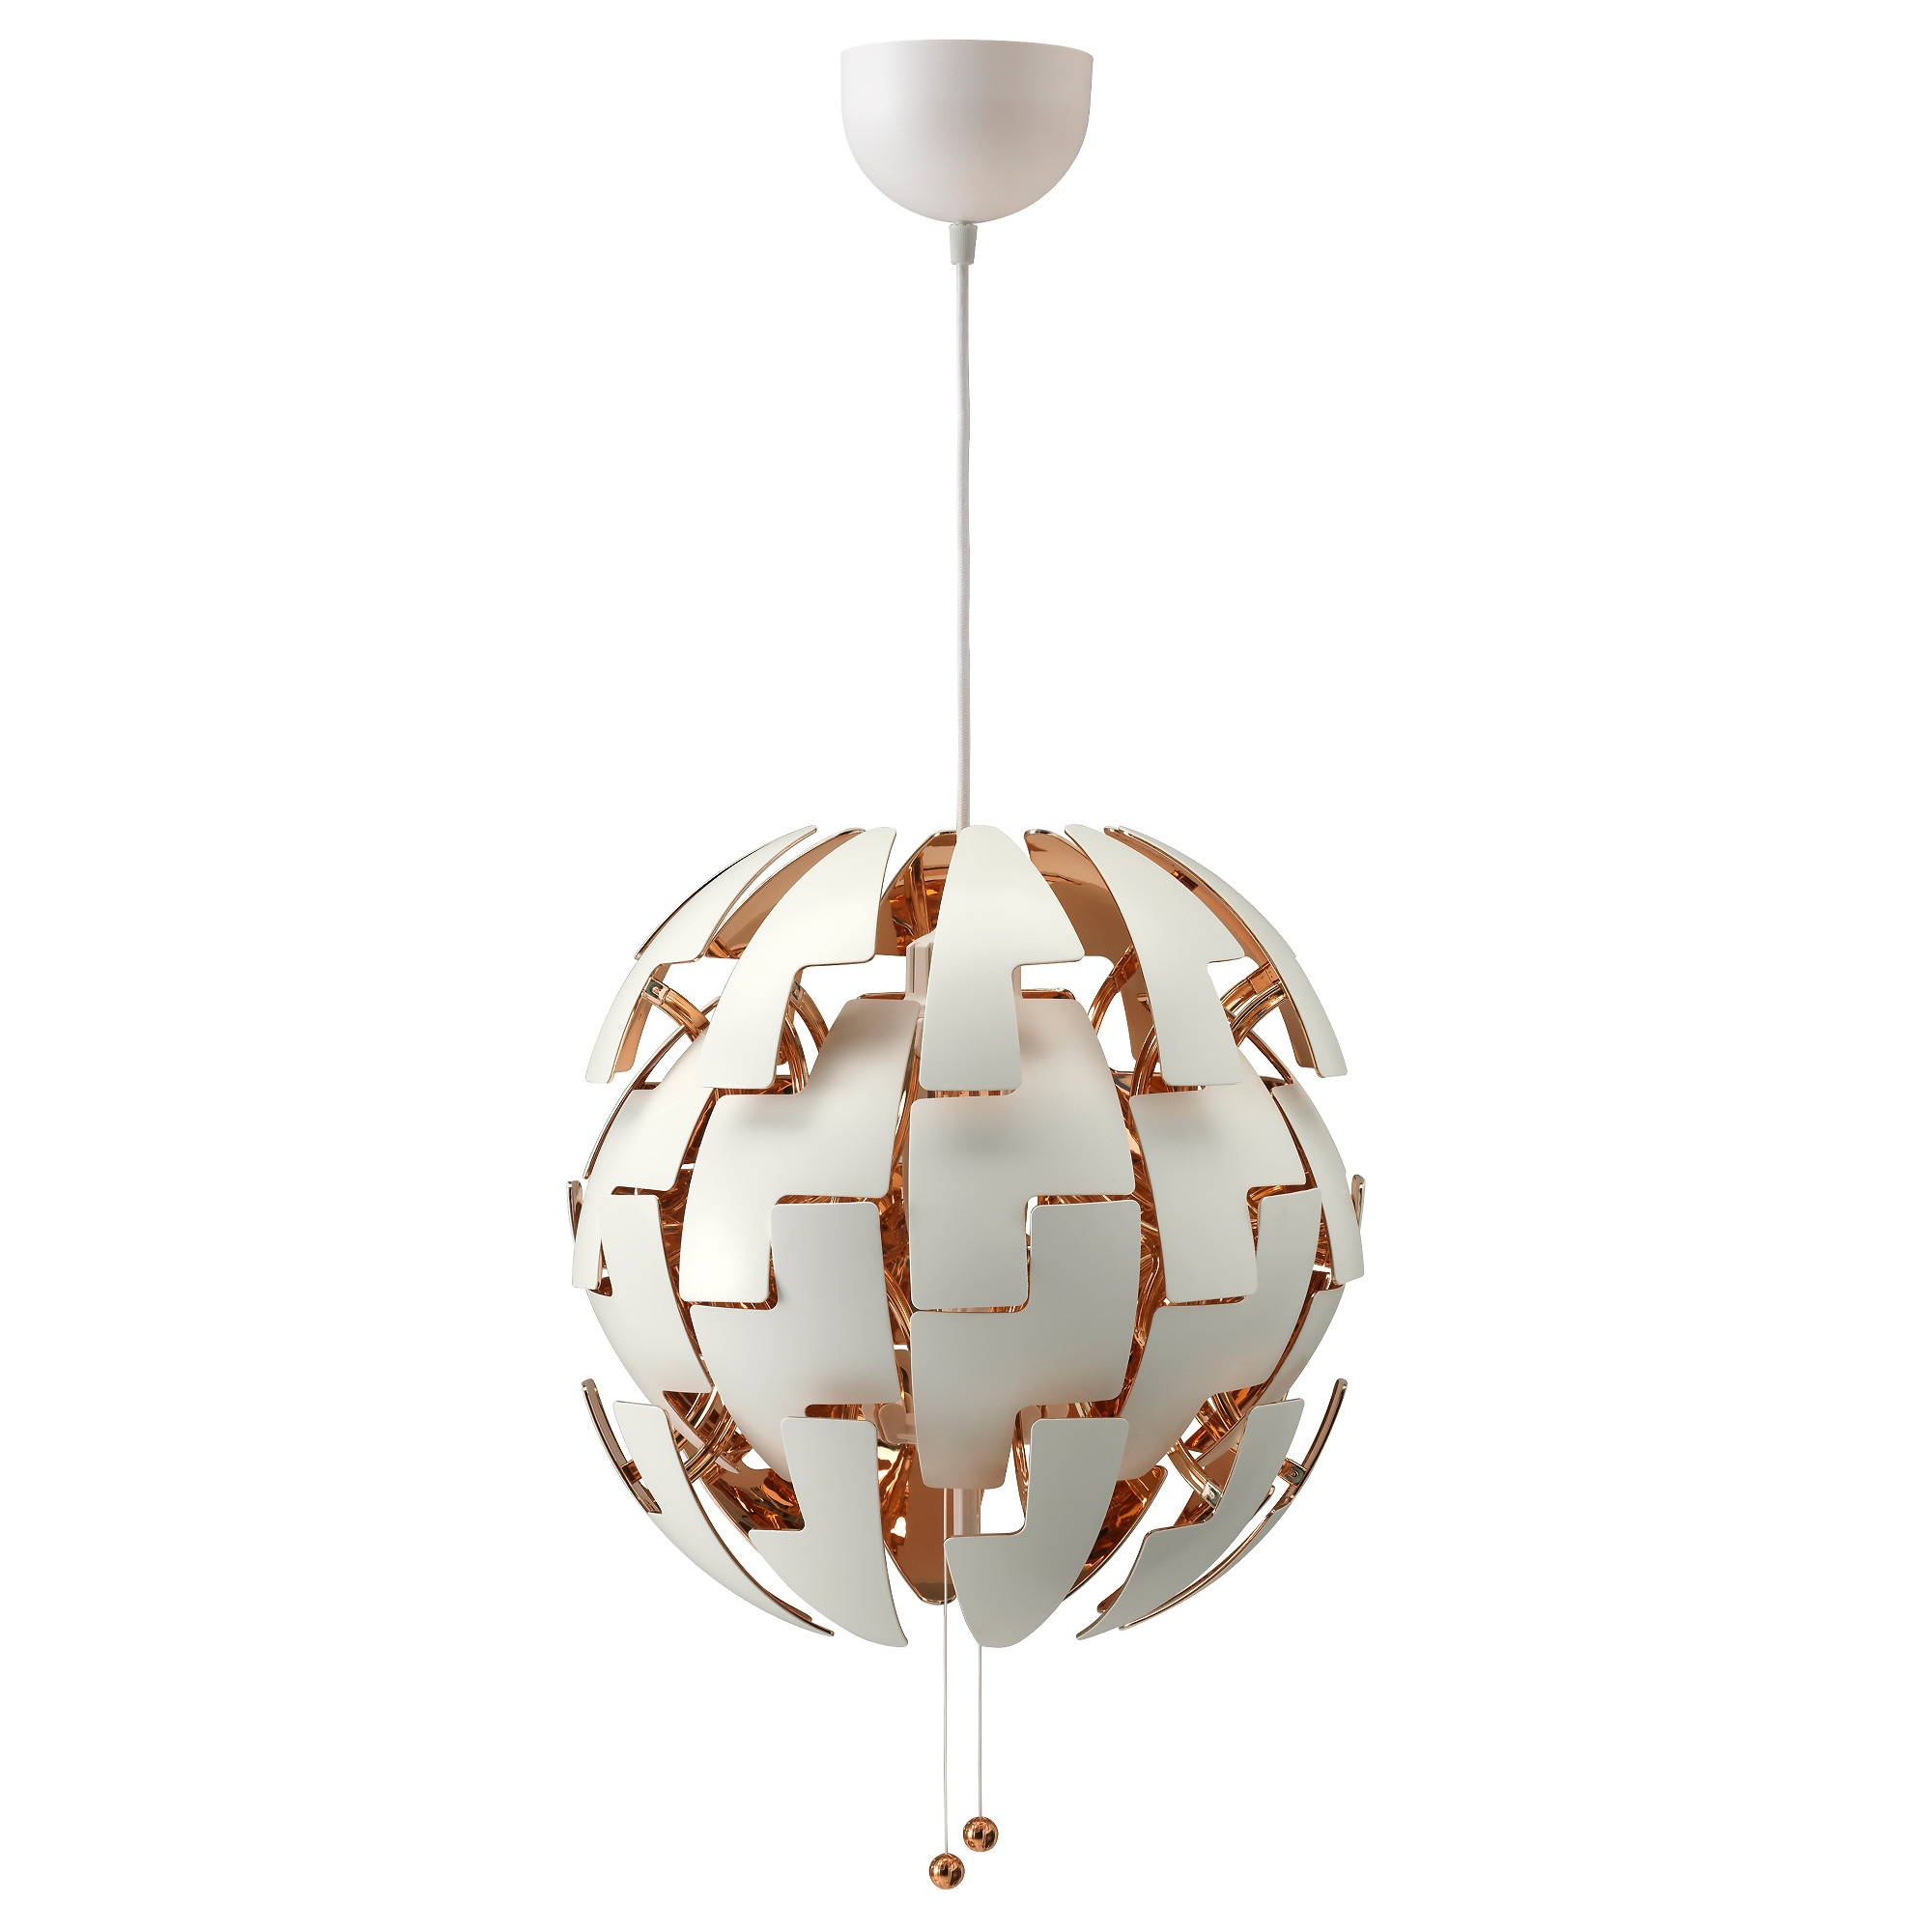 Ikea ps 2014 pendant lamp whitecopper color ikea mozeypictures Gallery